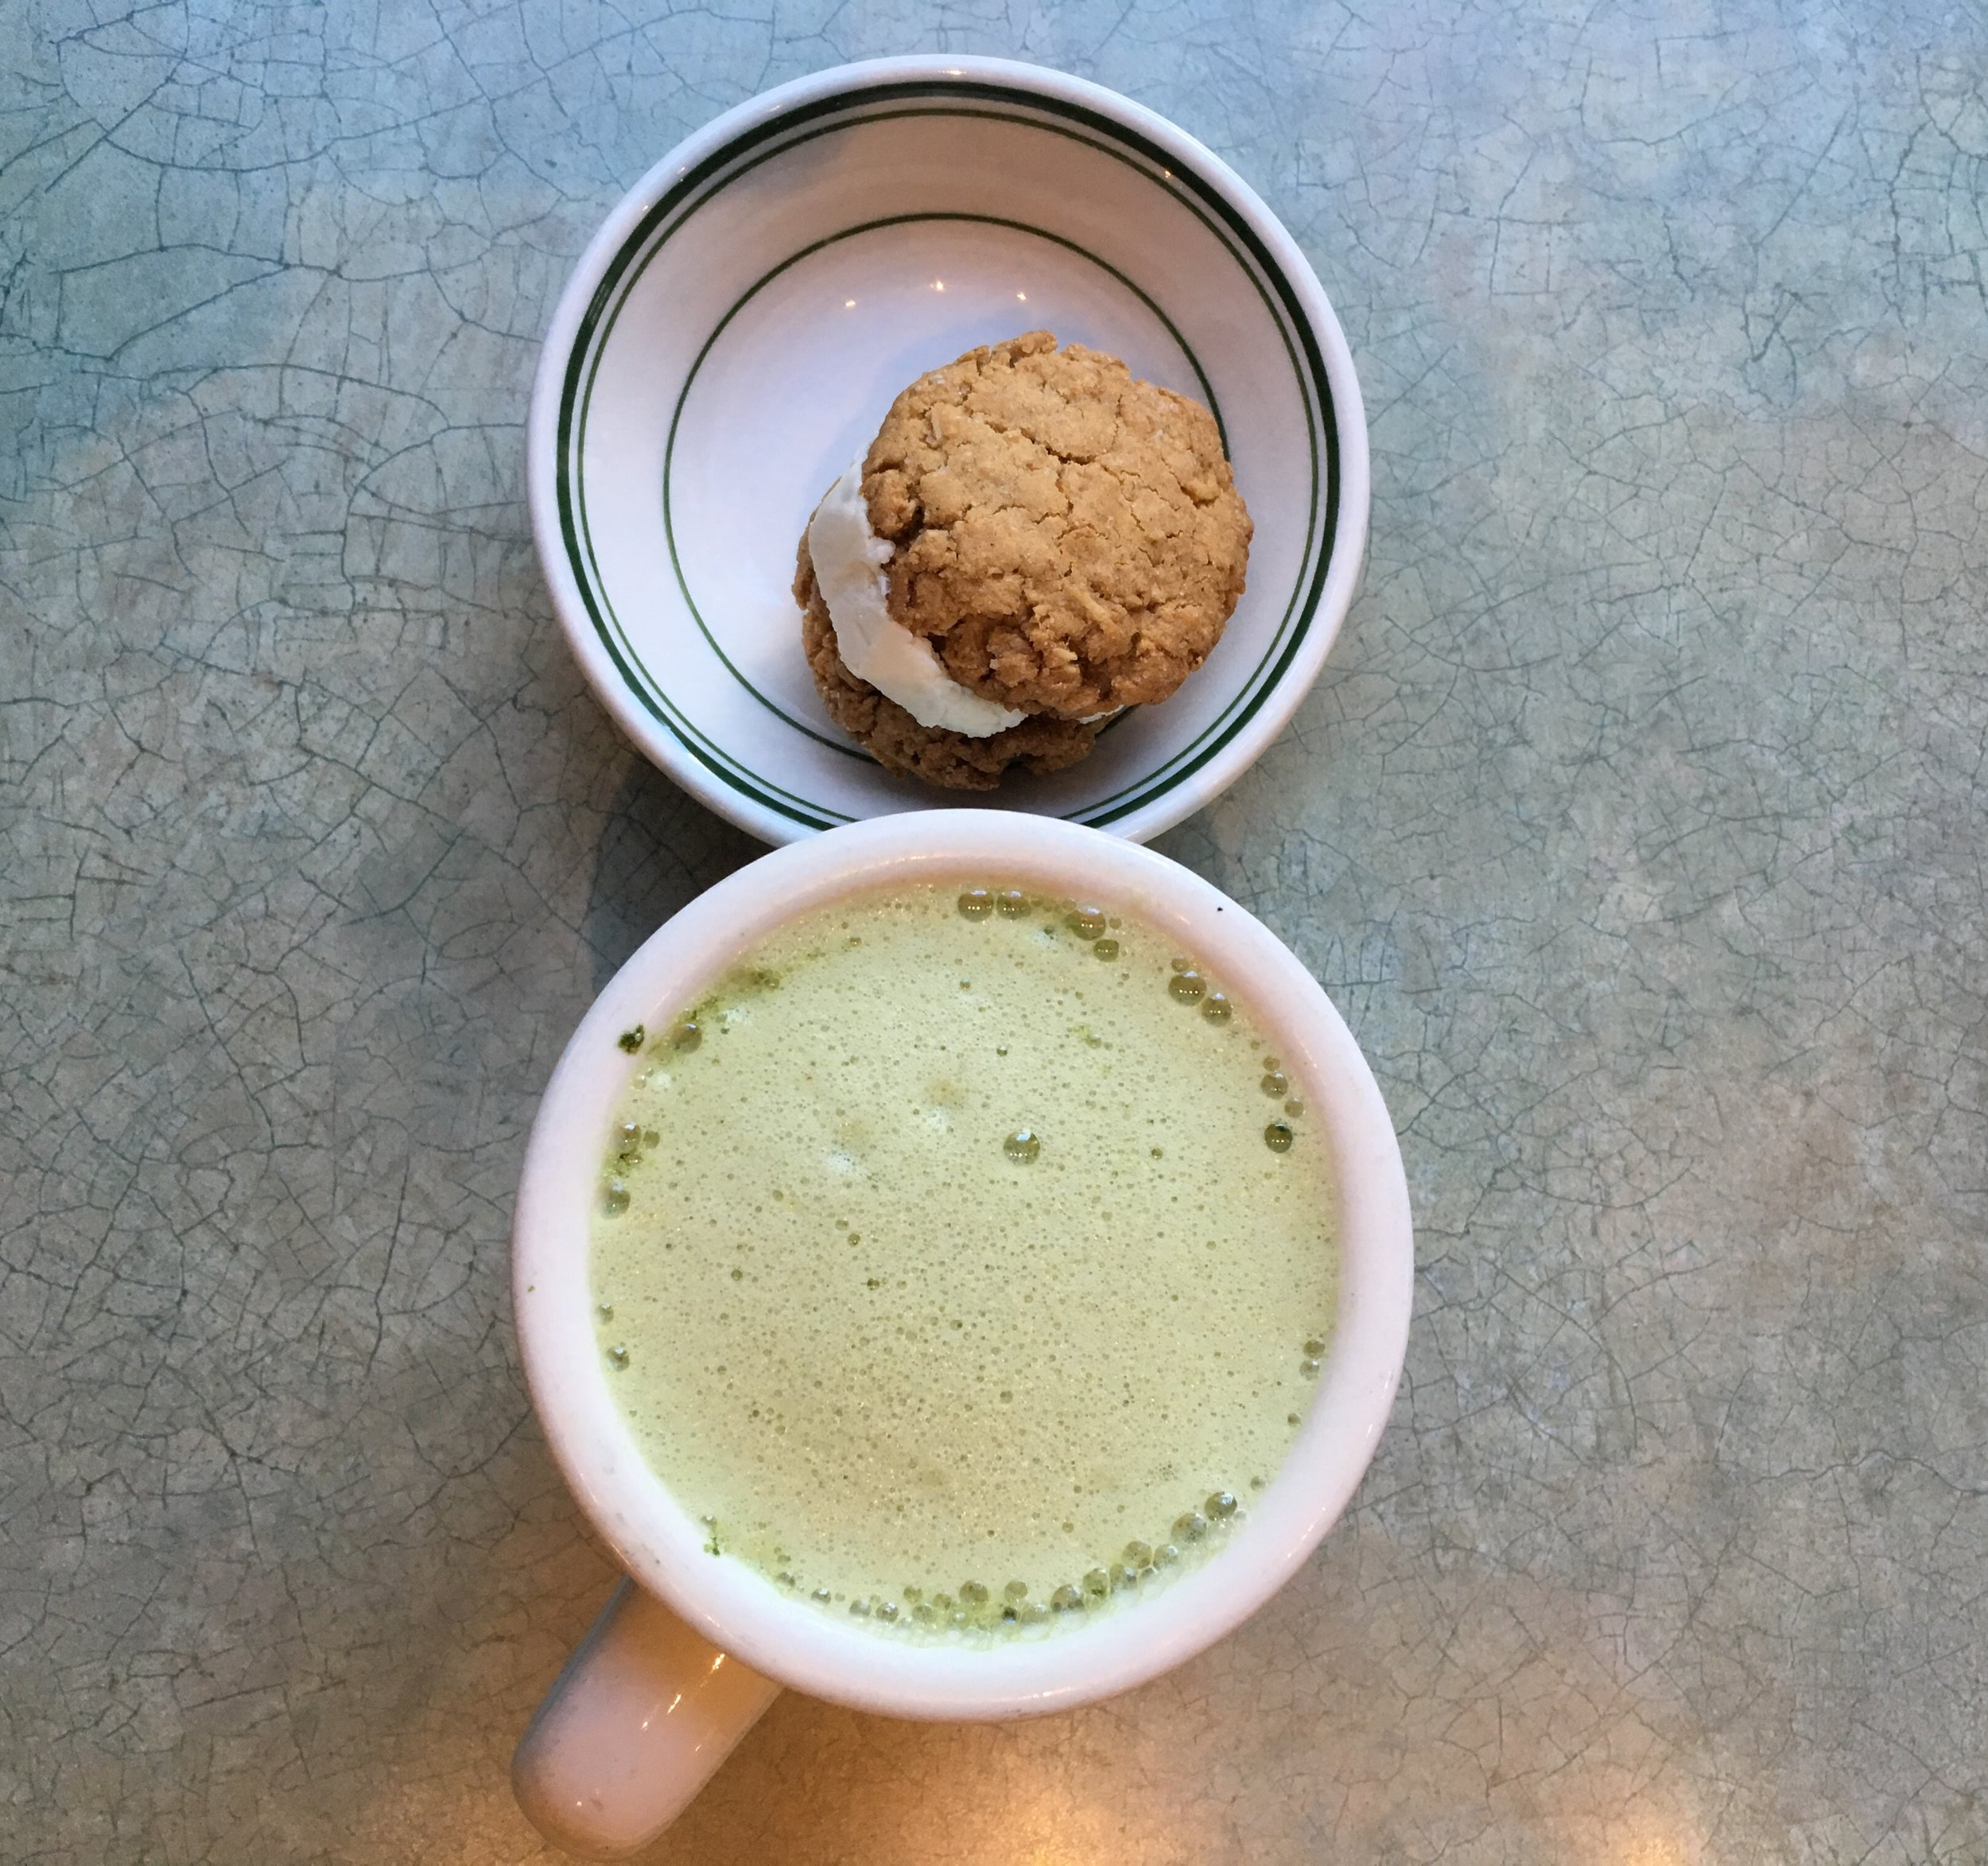 Matcha latte + vegan treat